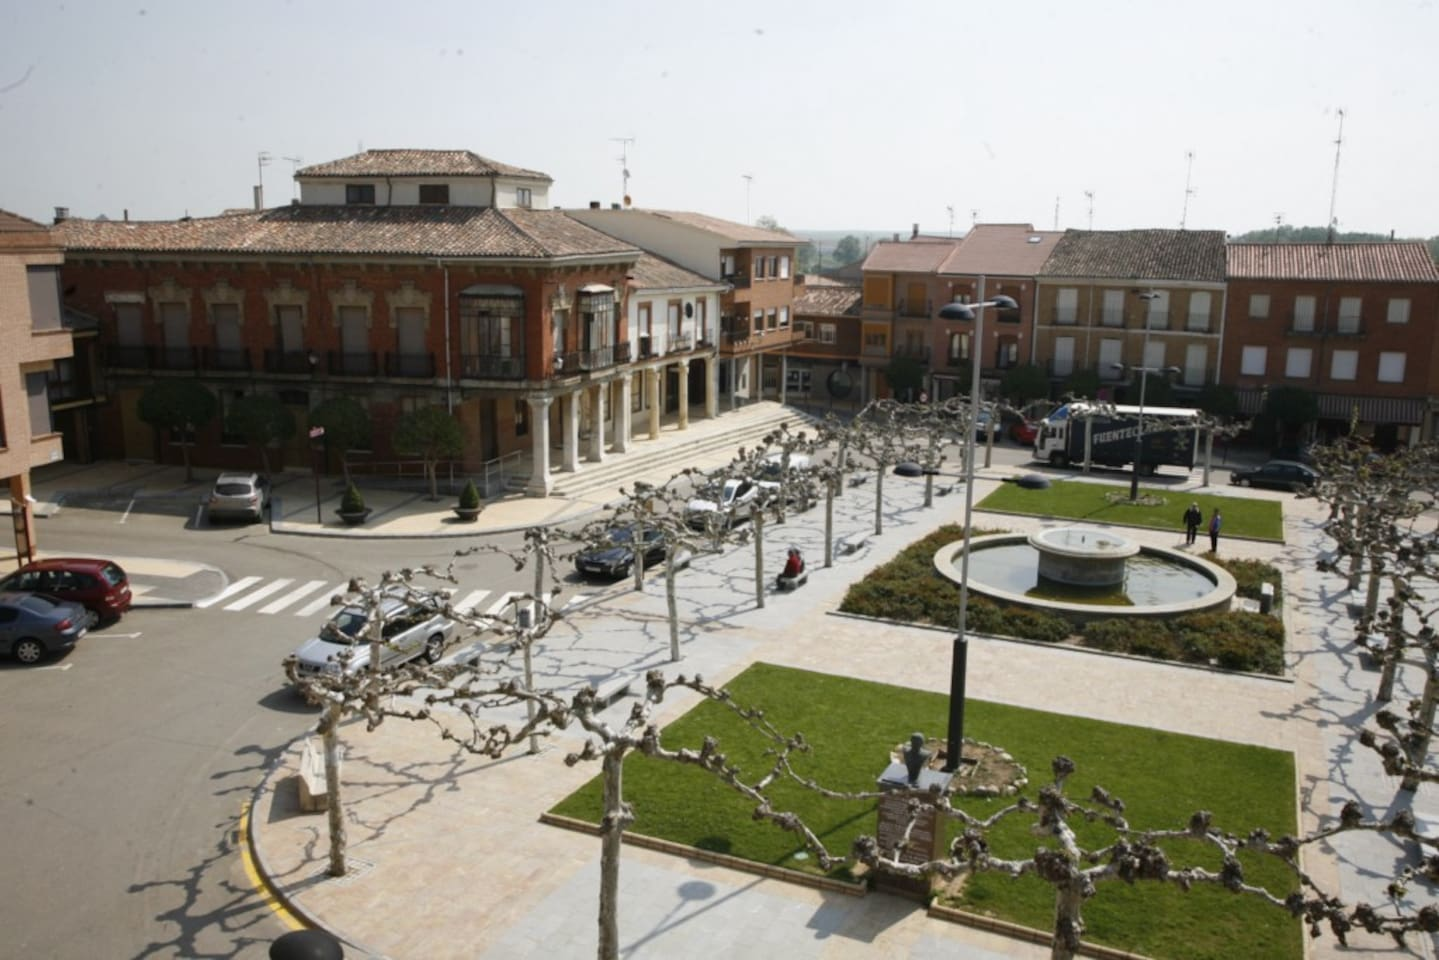 Vistas de la Plaza Mayor de Villada